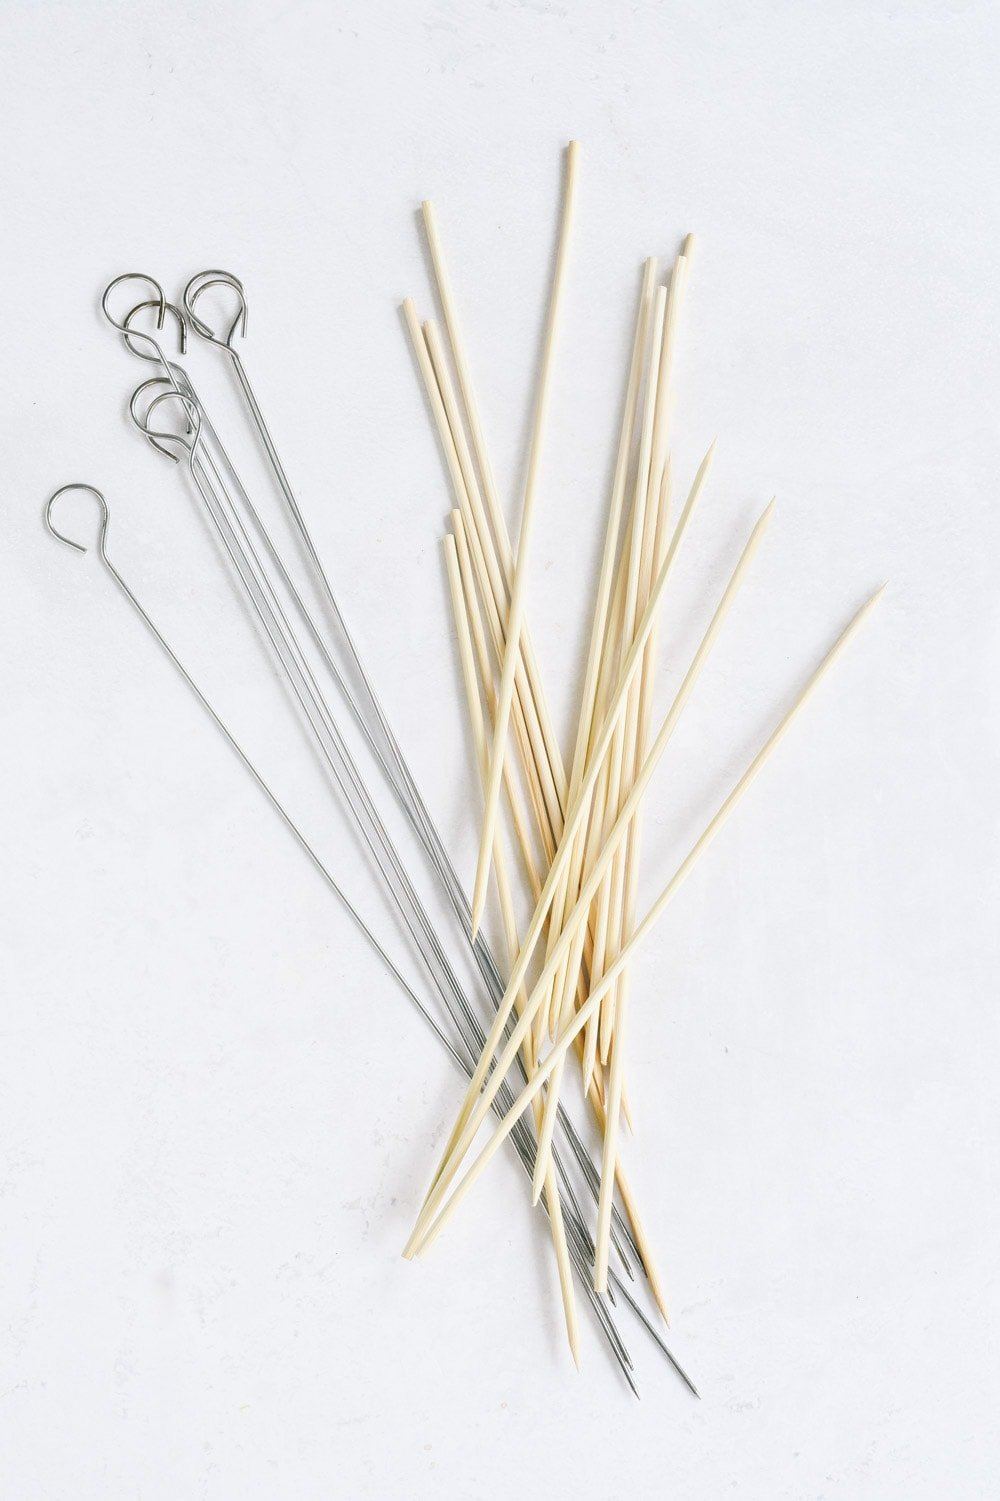 metal and bamboo skewers